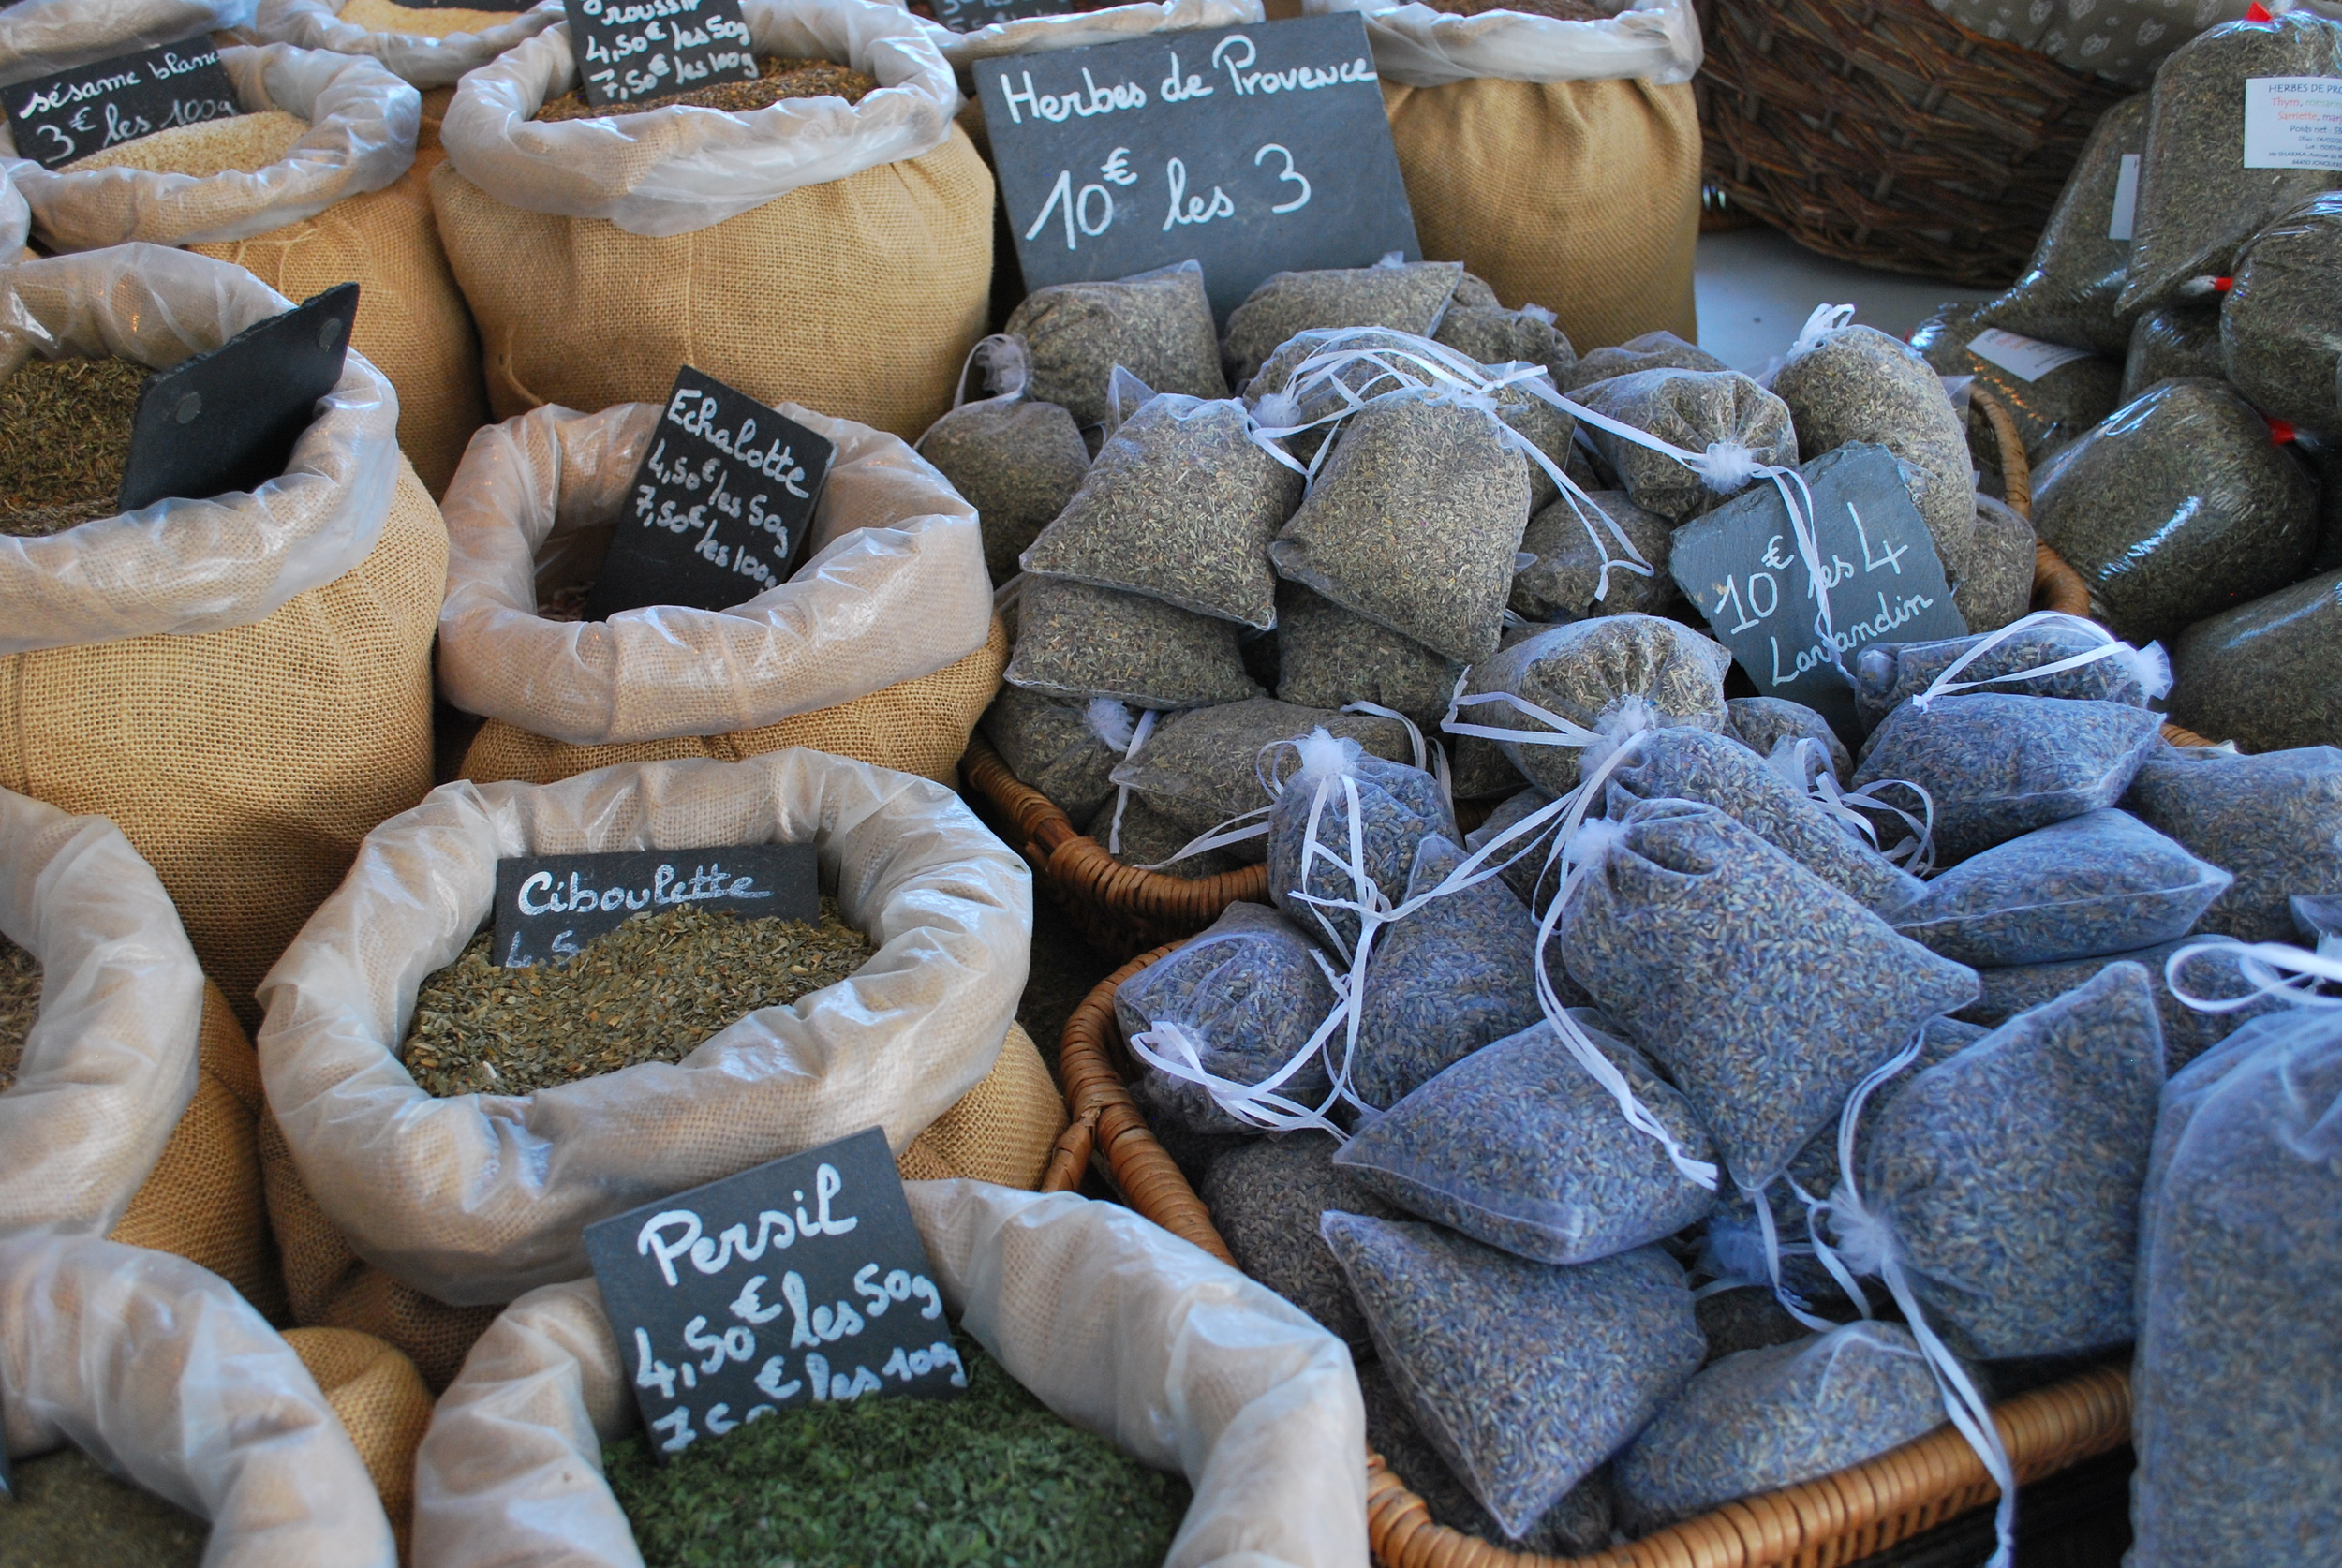 Lavender for Sale at Eygalieres Friday Market